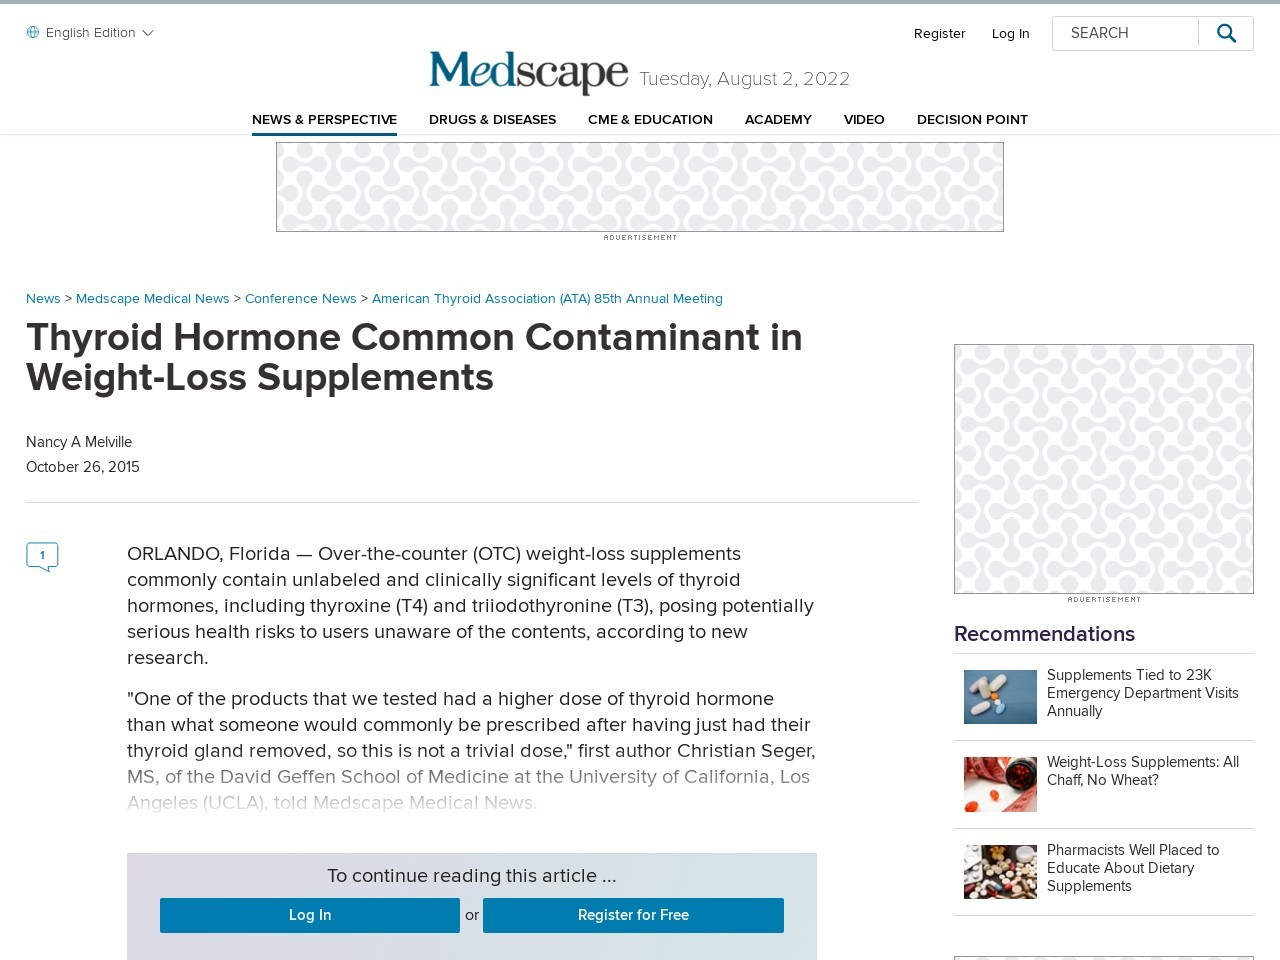 Thyroid Hormone Common Contaminant in Weight-Loss Supplements